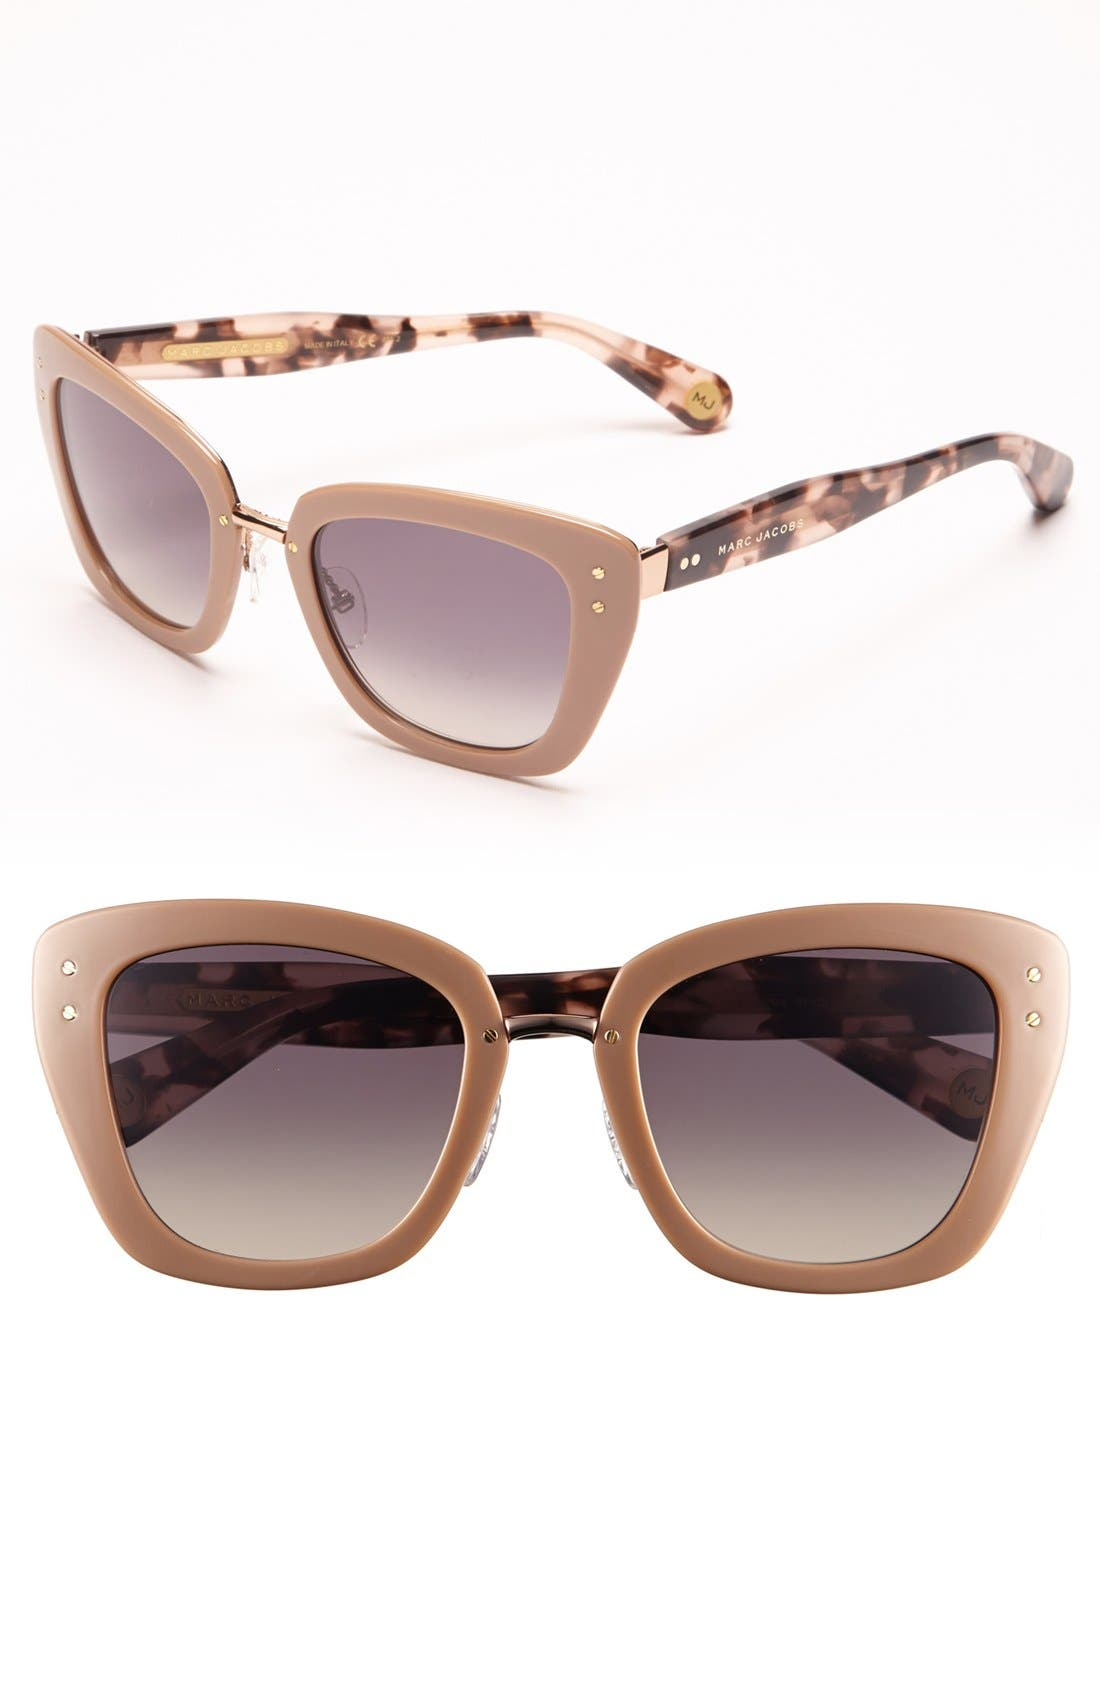 Alternate Image 1 Selected - Marc Jacobs 53mm Retro Sunglasses